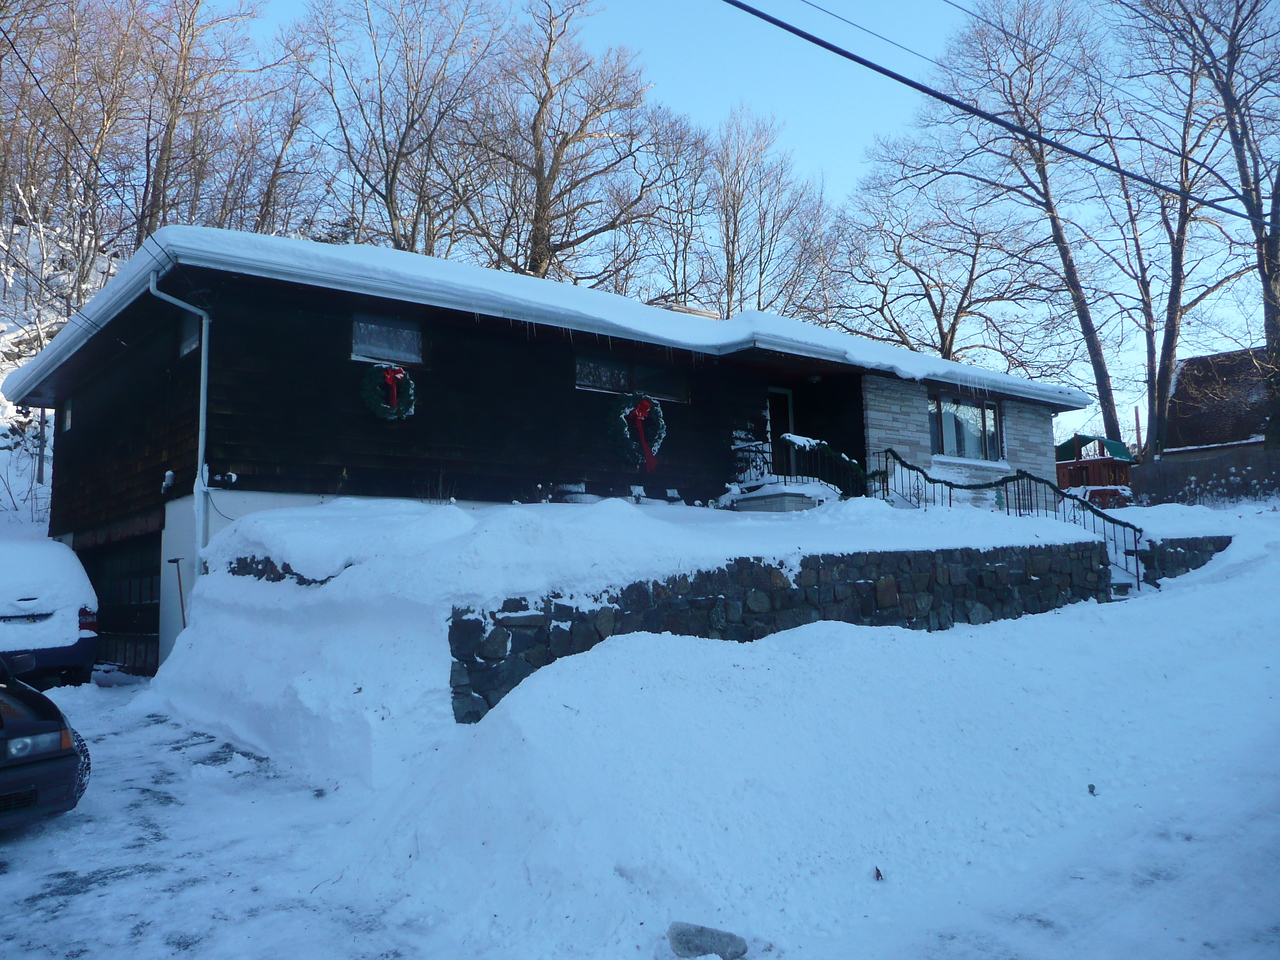 December 27, 2010. A late-Christmas storm brought 18 inches to Lynn, MA.